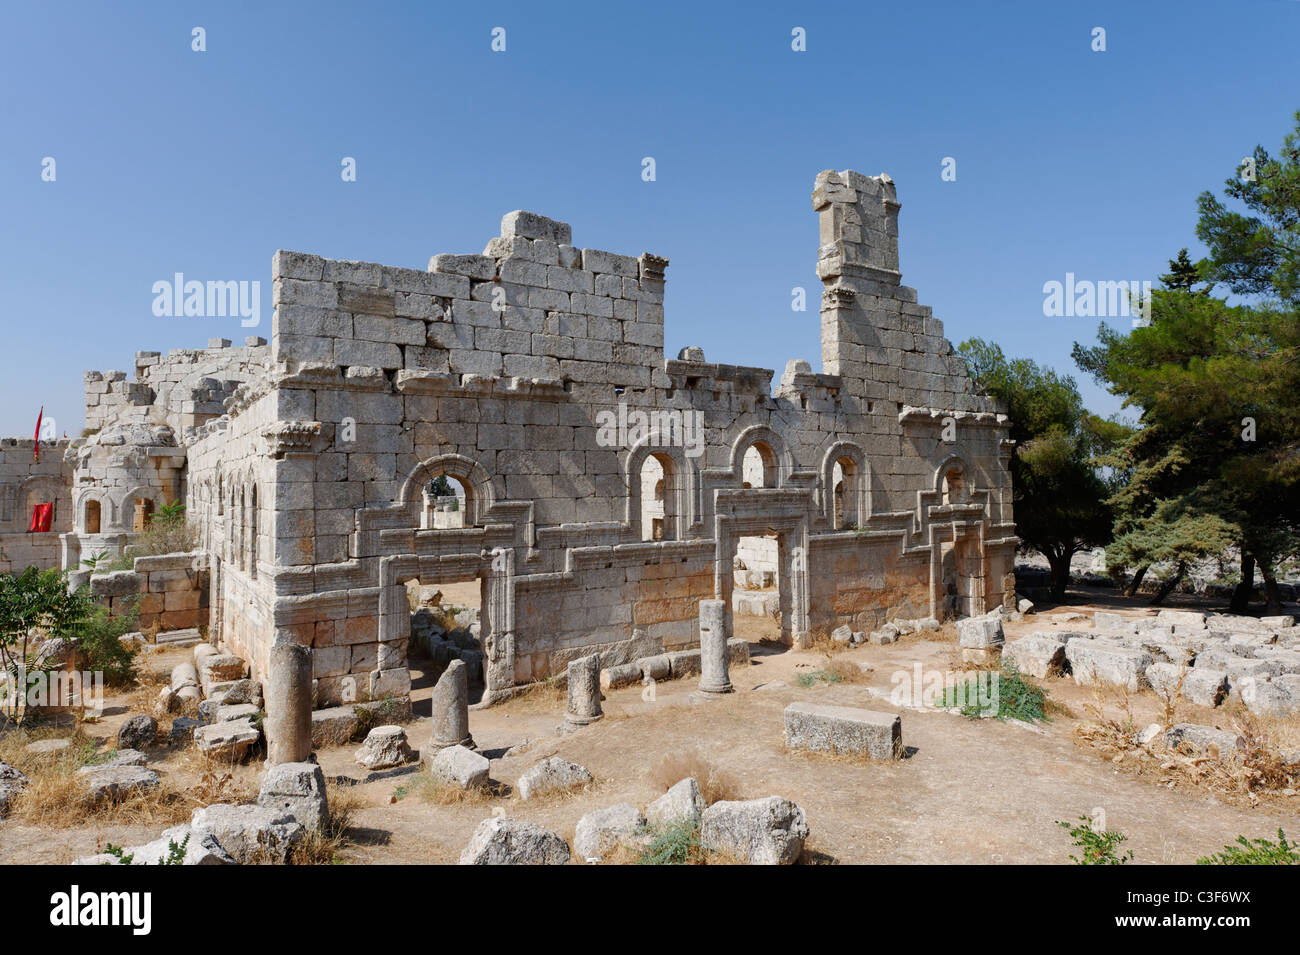 St Simeon. Syria. View of facade of the northern basilica of the Church of Saint Simeon. - Stock Image